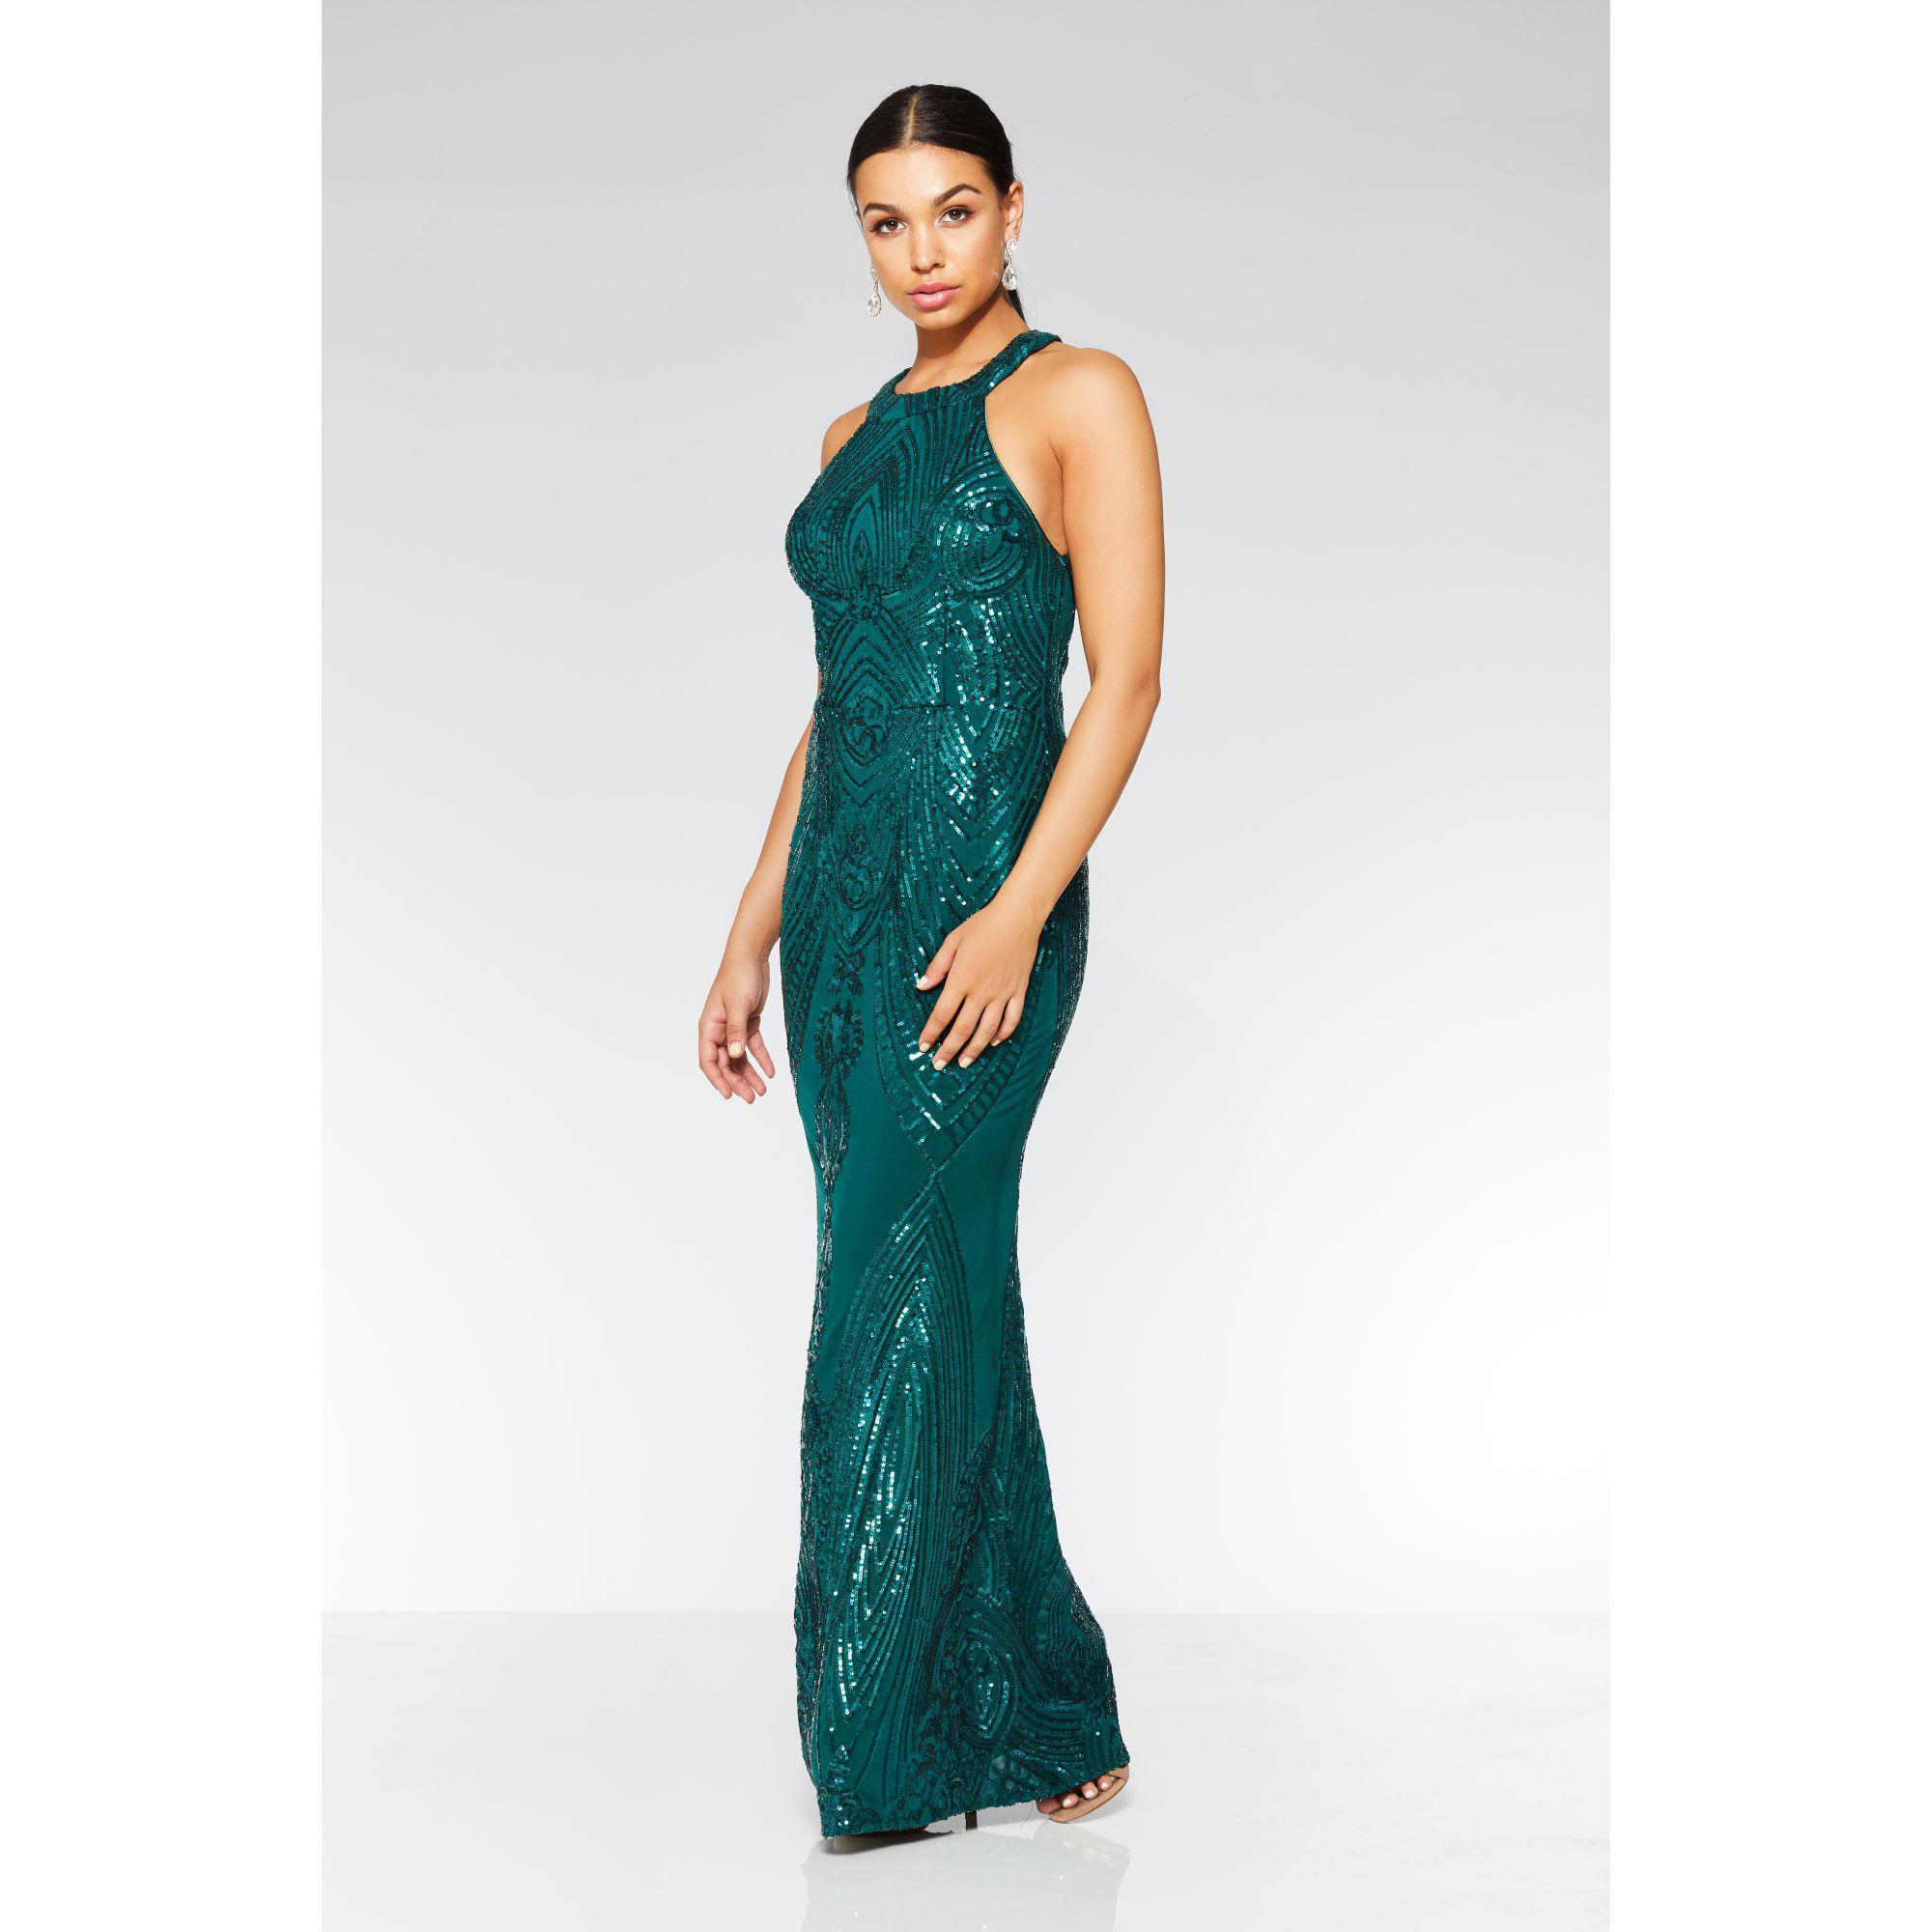 94b3d3ae45 Quiz Olivia s Bottle Green Sequin High Neck Fishtail Maxi Dress in ...